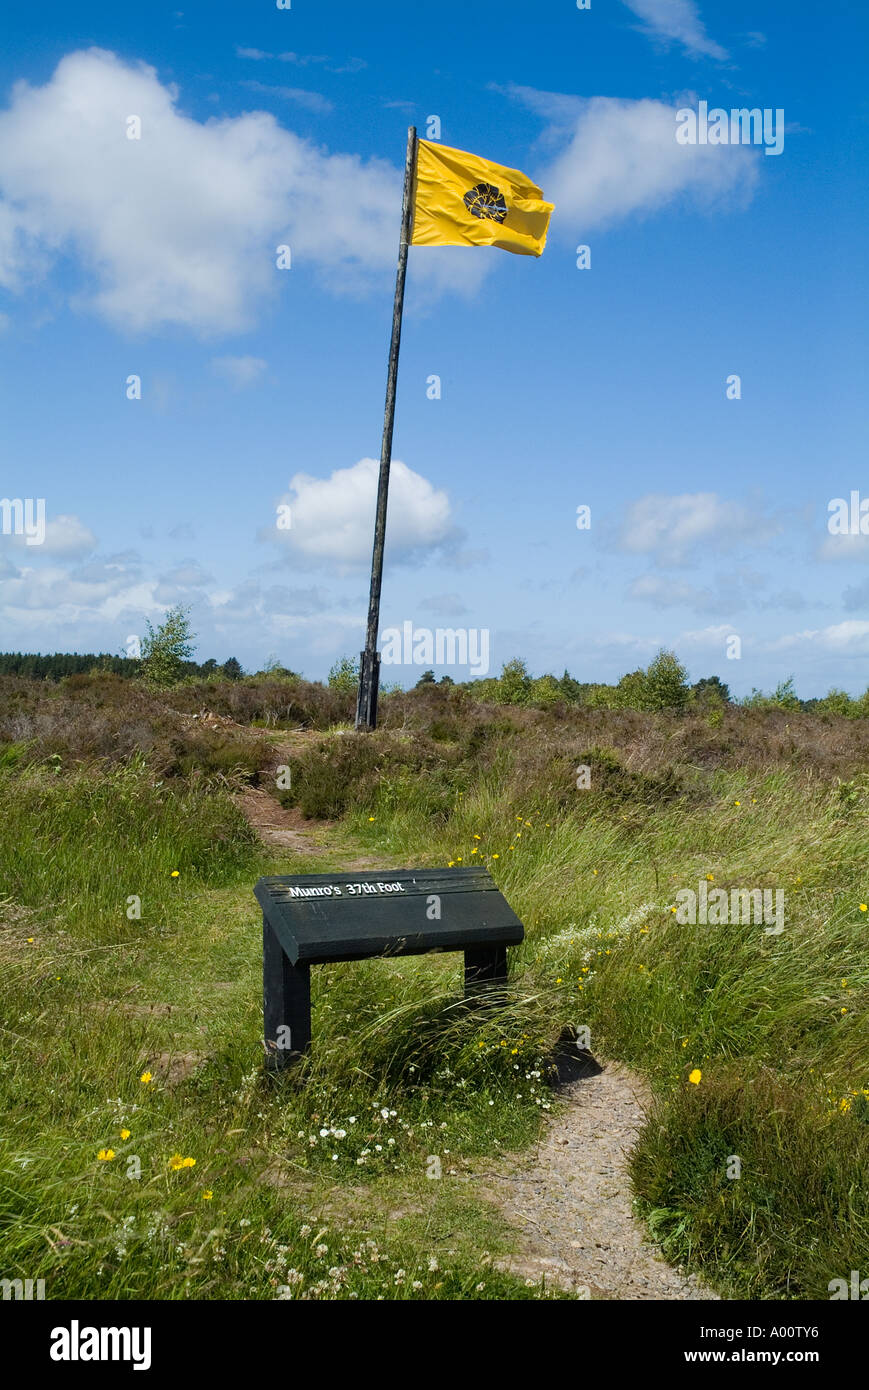 dh Culloden battlefield CULLODEN MOOR INVERNESSSHIRE Scottish army Flag Clan Munros 37 foot soldiers battlefields Stock Photo